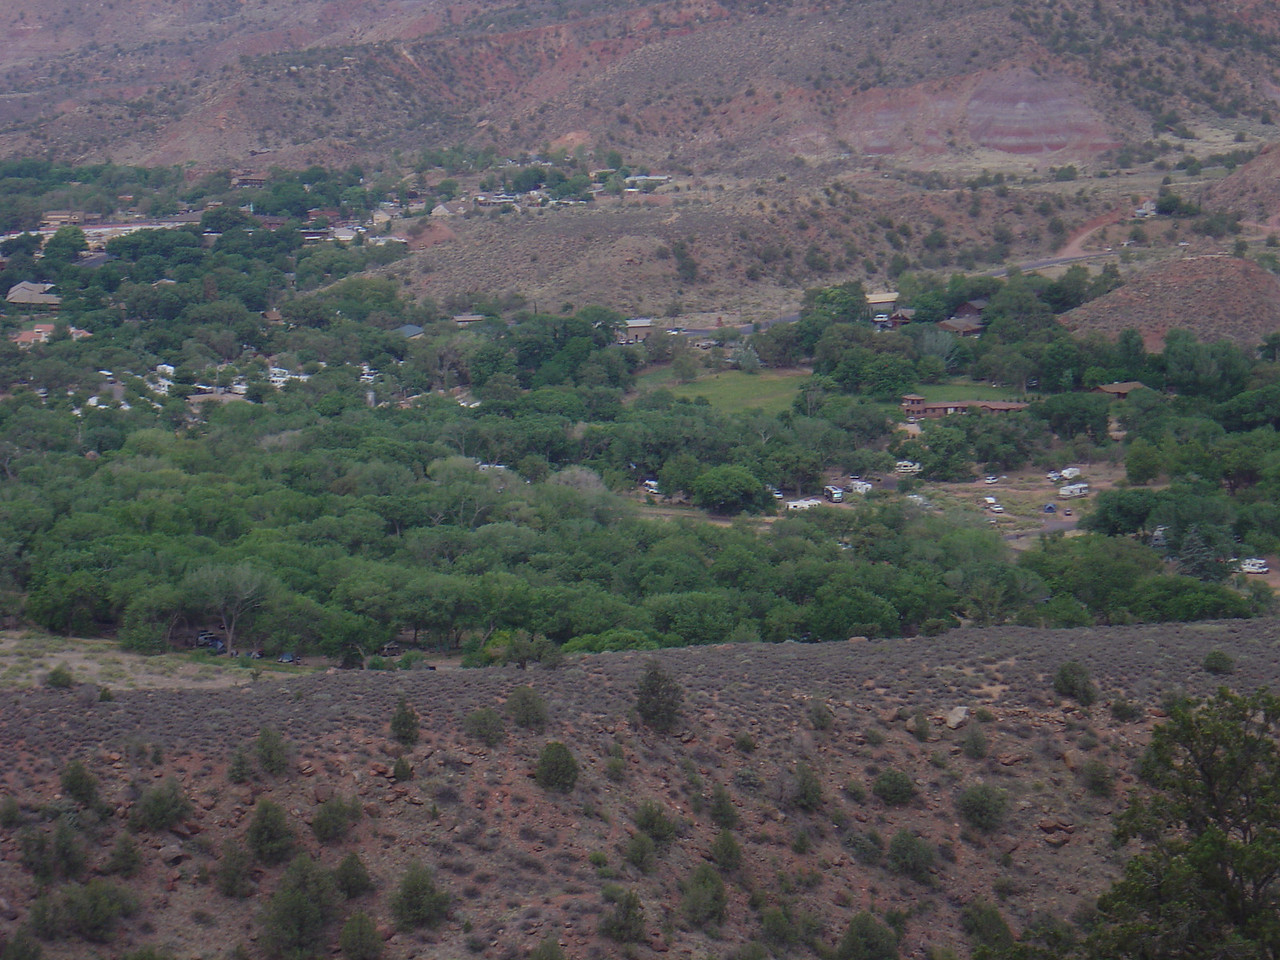 VIew of the camp ground from the Watchman's trail.